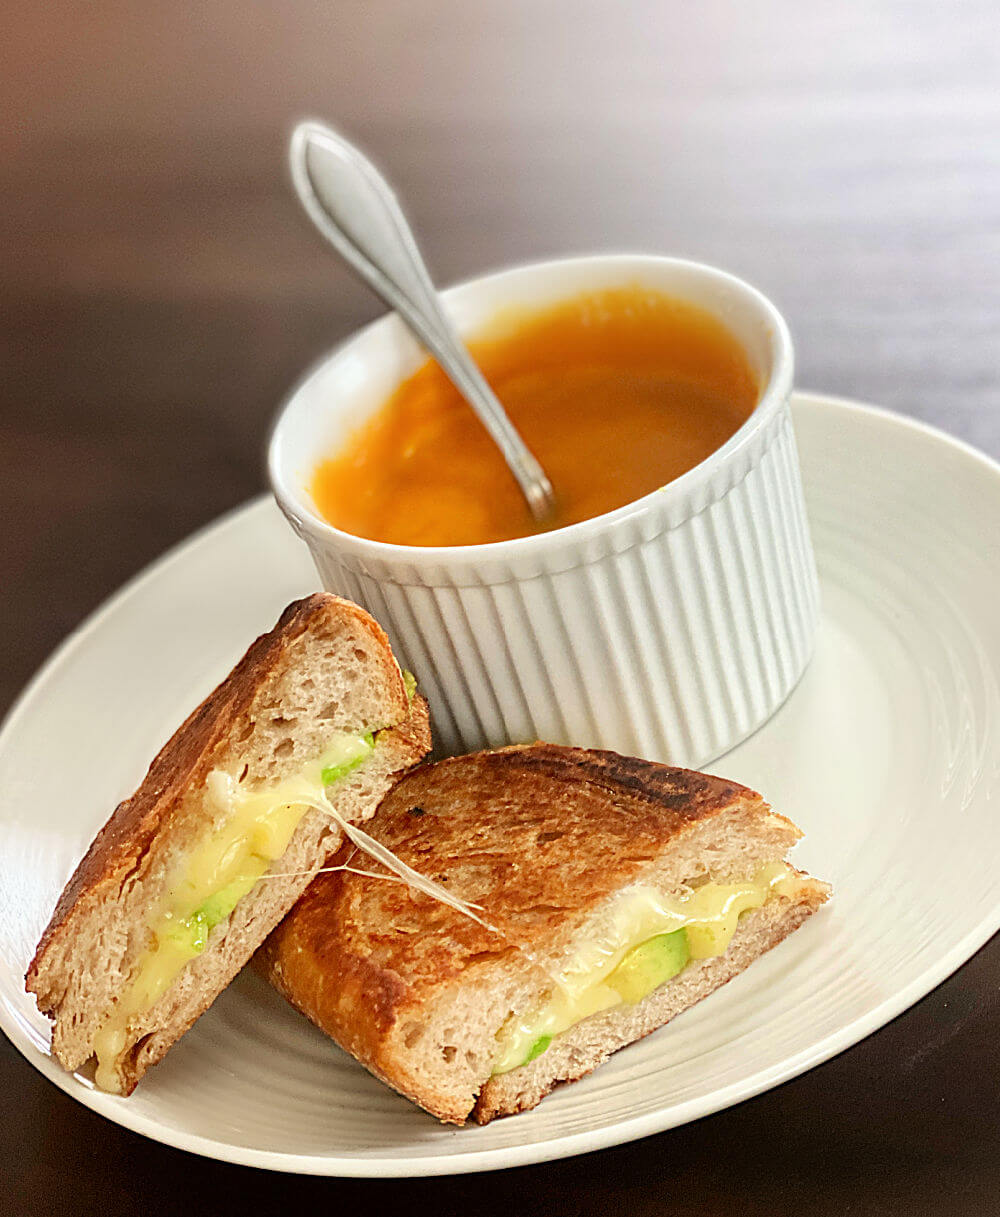 grilled cheese with avocado and homemade soup